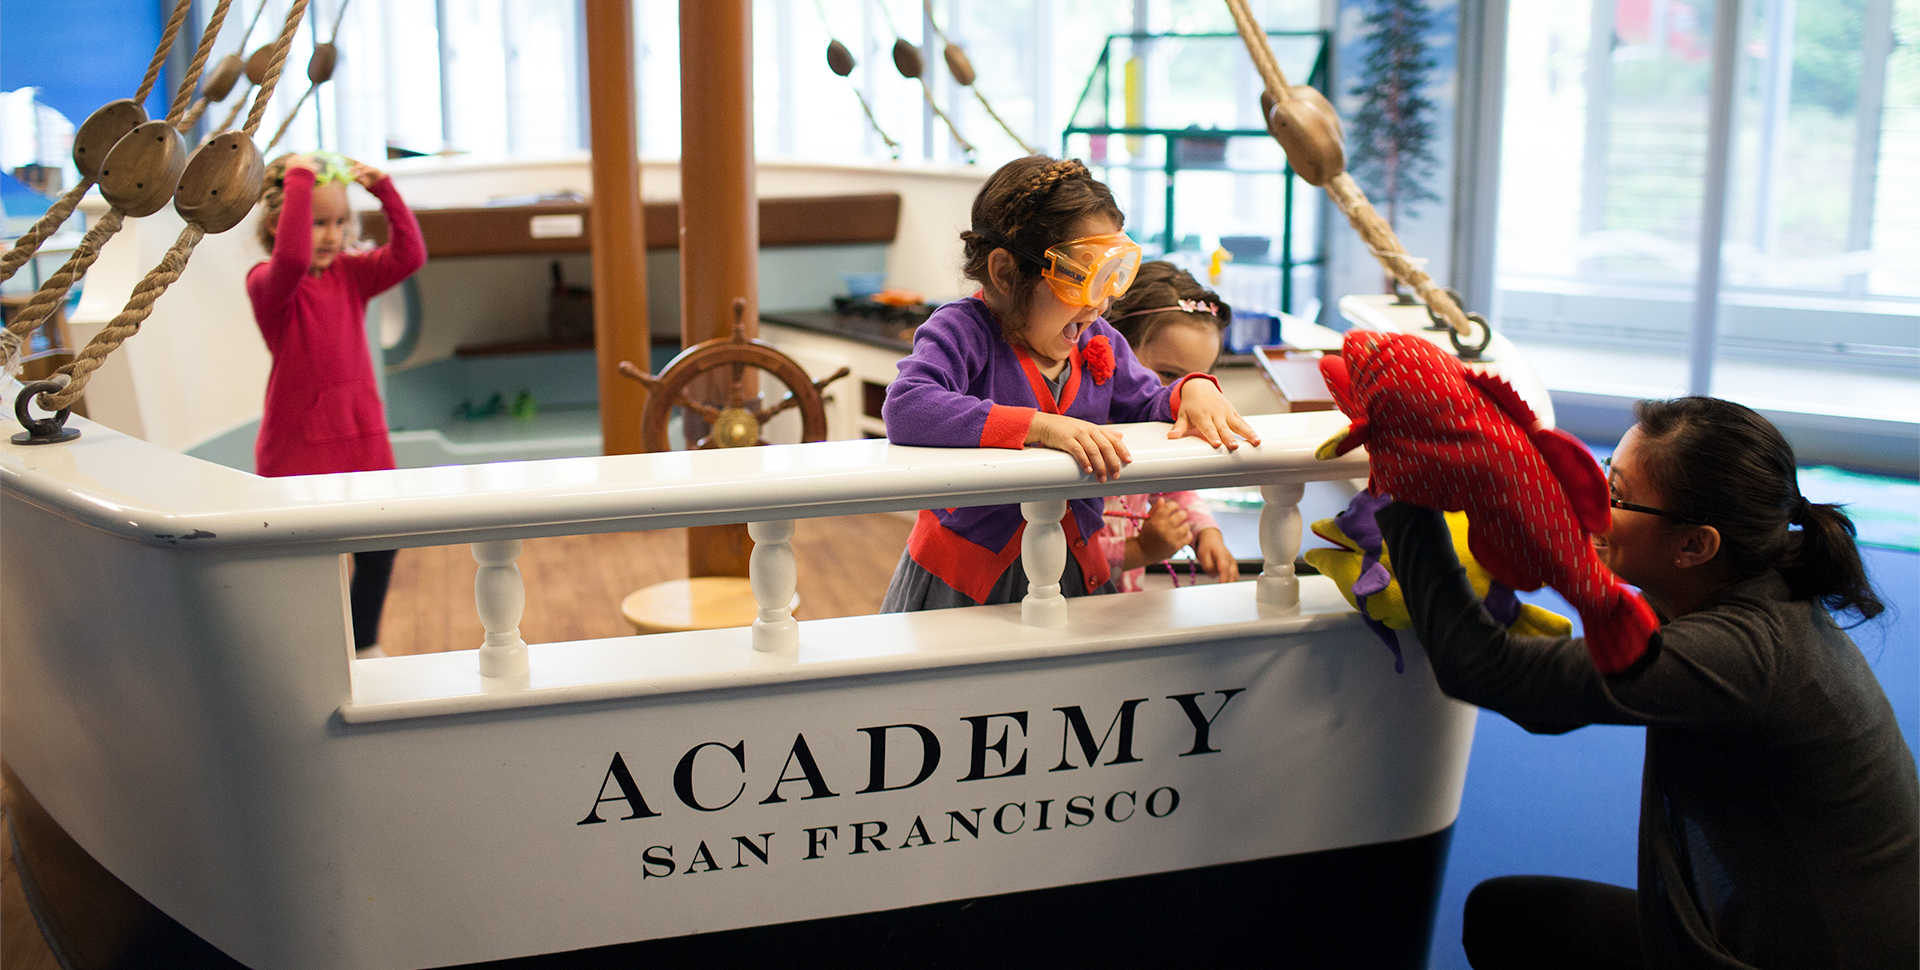 Young children play aboard a pint-sized replica of the H.M.S. Academy.